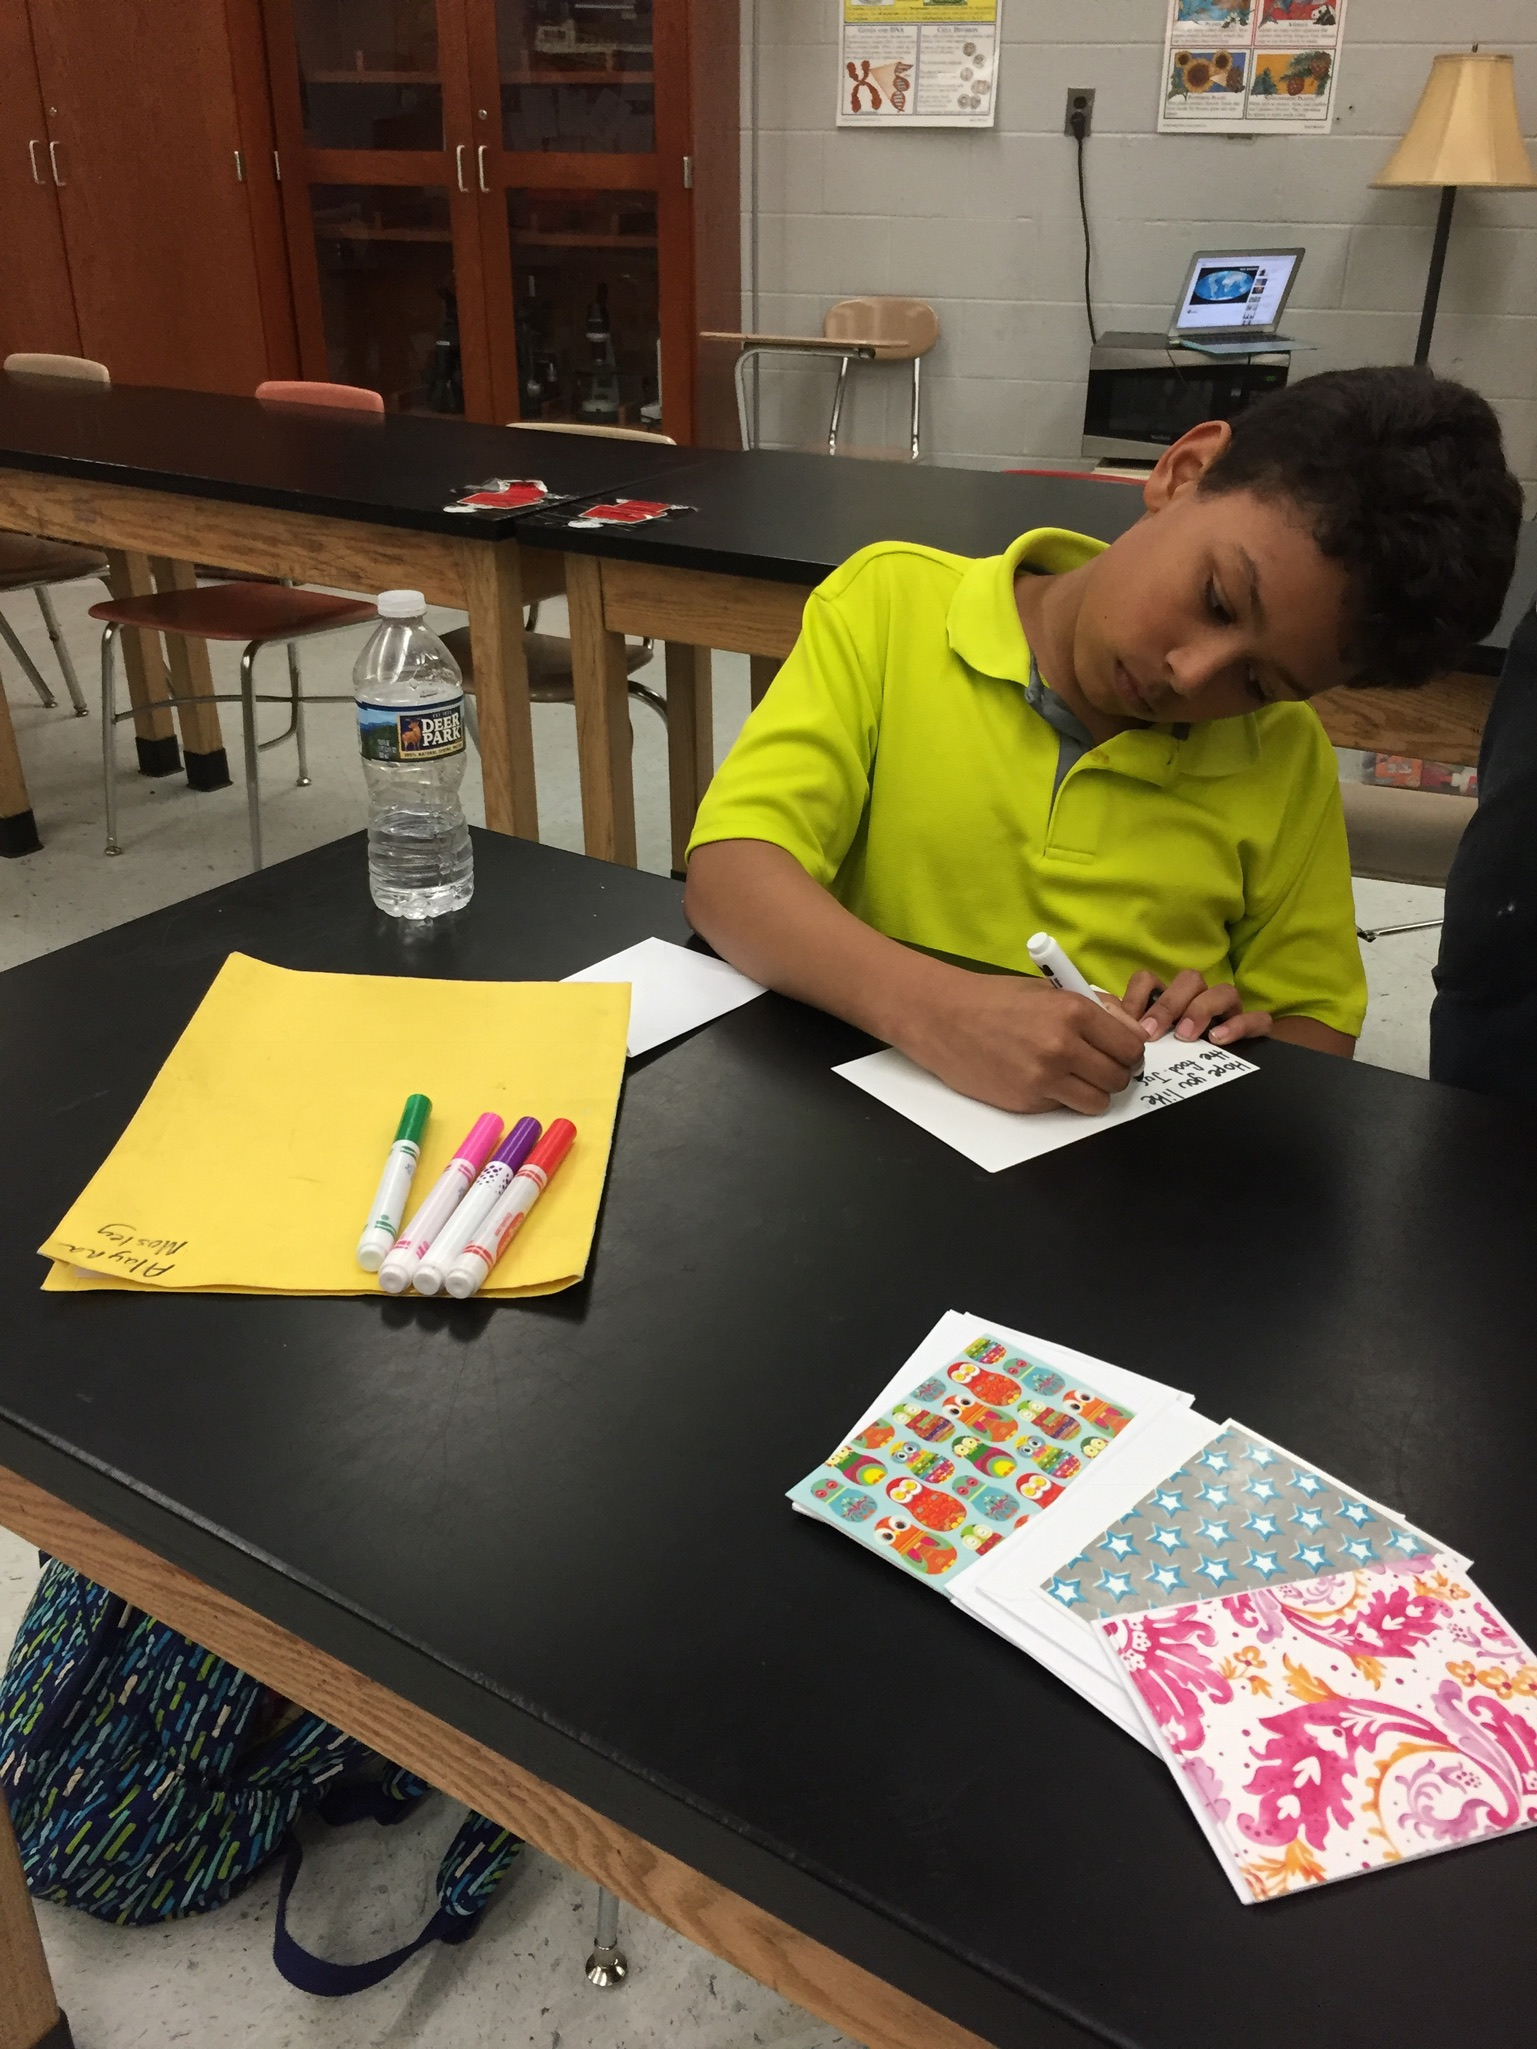 Students took time to write cards to the families receiving the baskets of food.